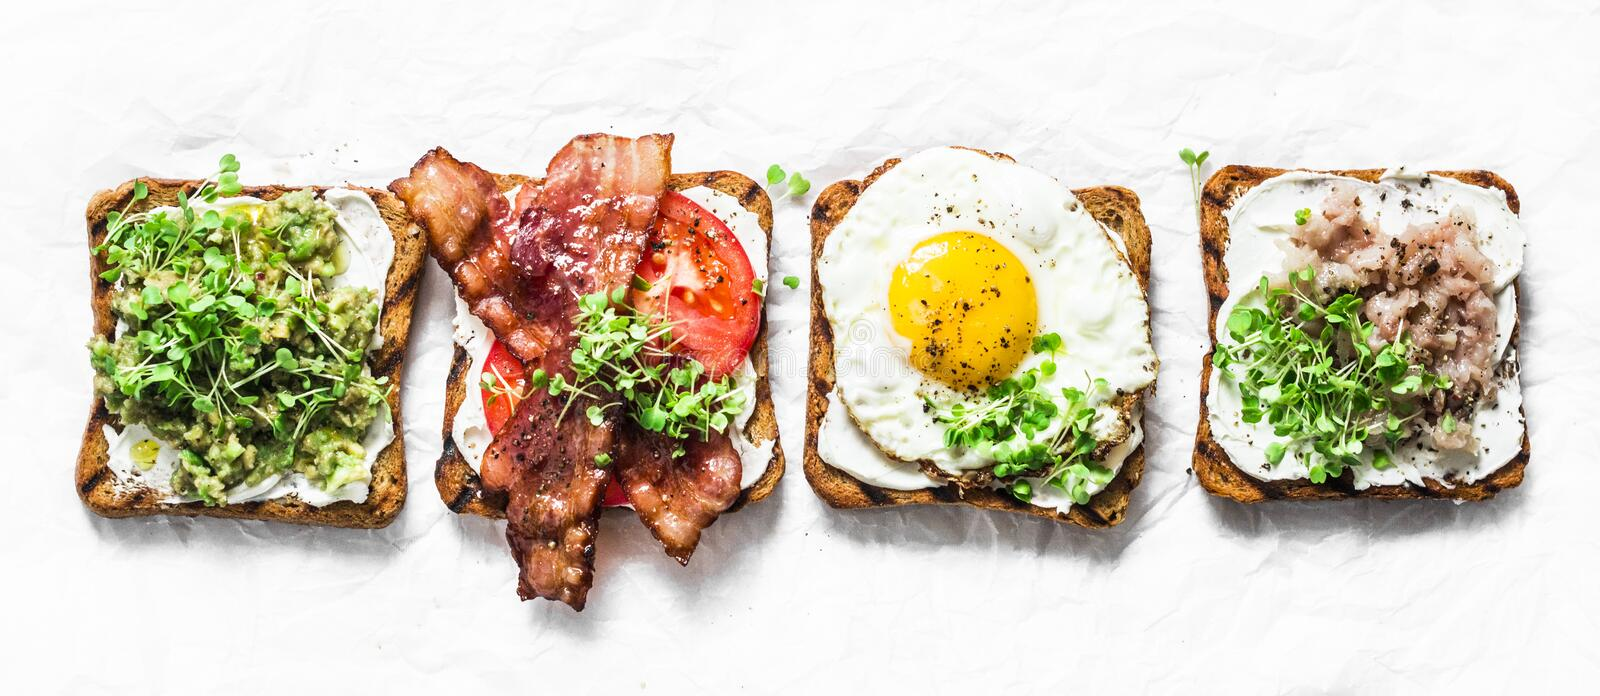 Variety of sandwiches for breakfast, snack, appetizers - avocado puree, fried egg, tomatoes, bacon, cheese, smoked mackerel. Variety of sandwiches for breakfast stock photos